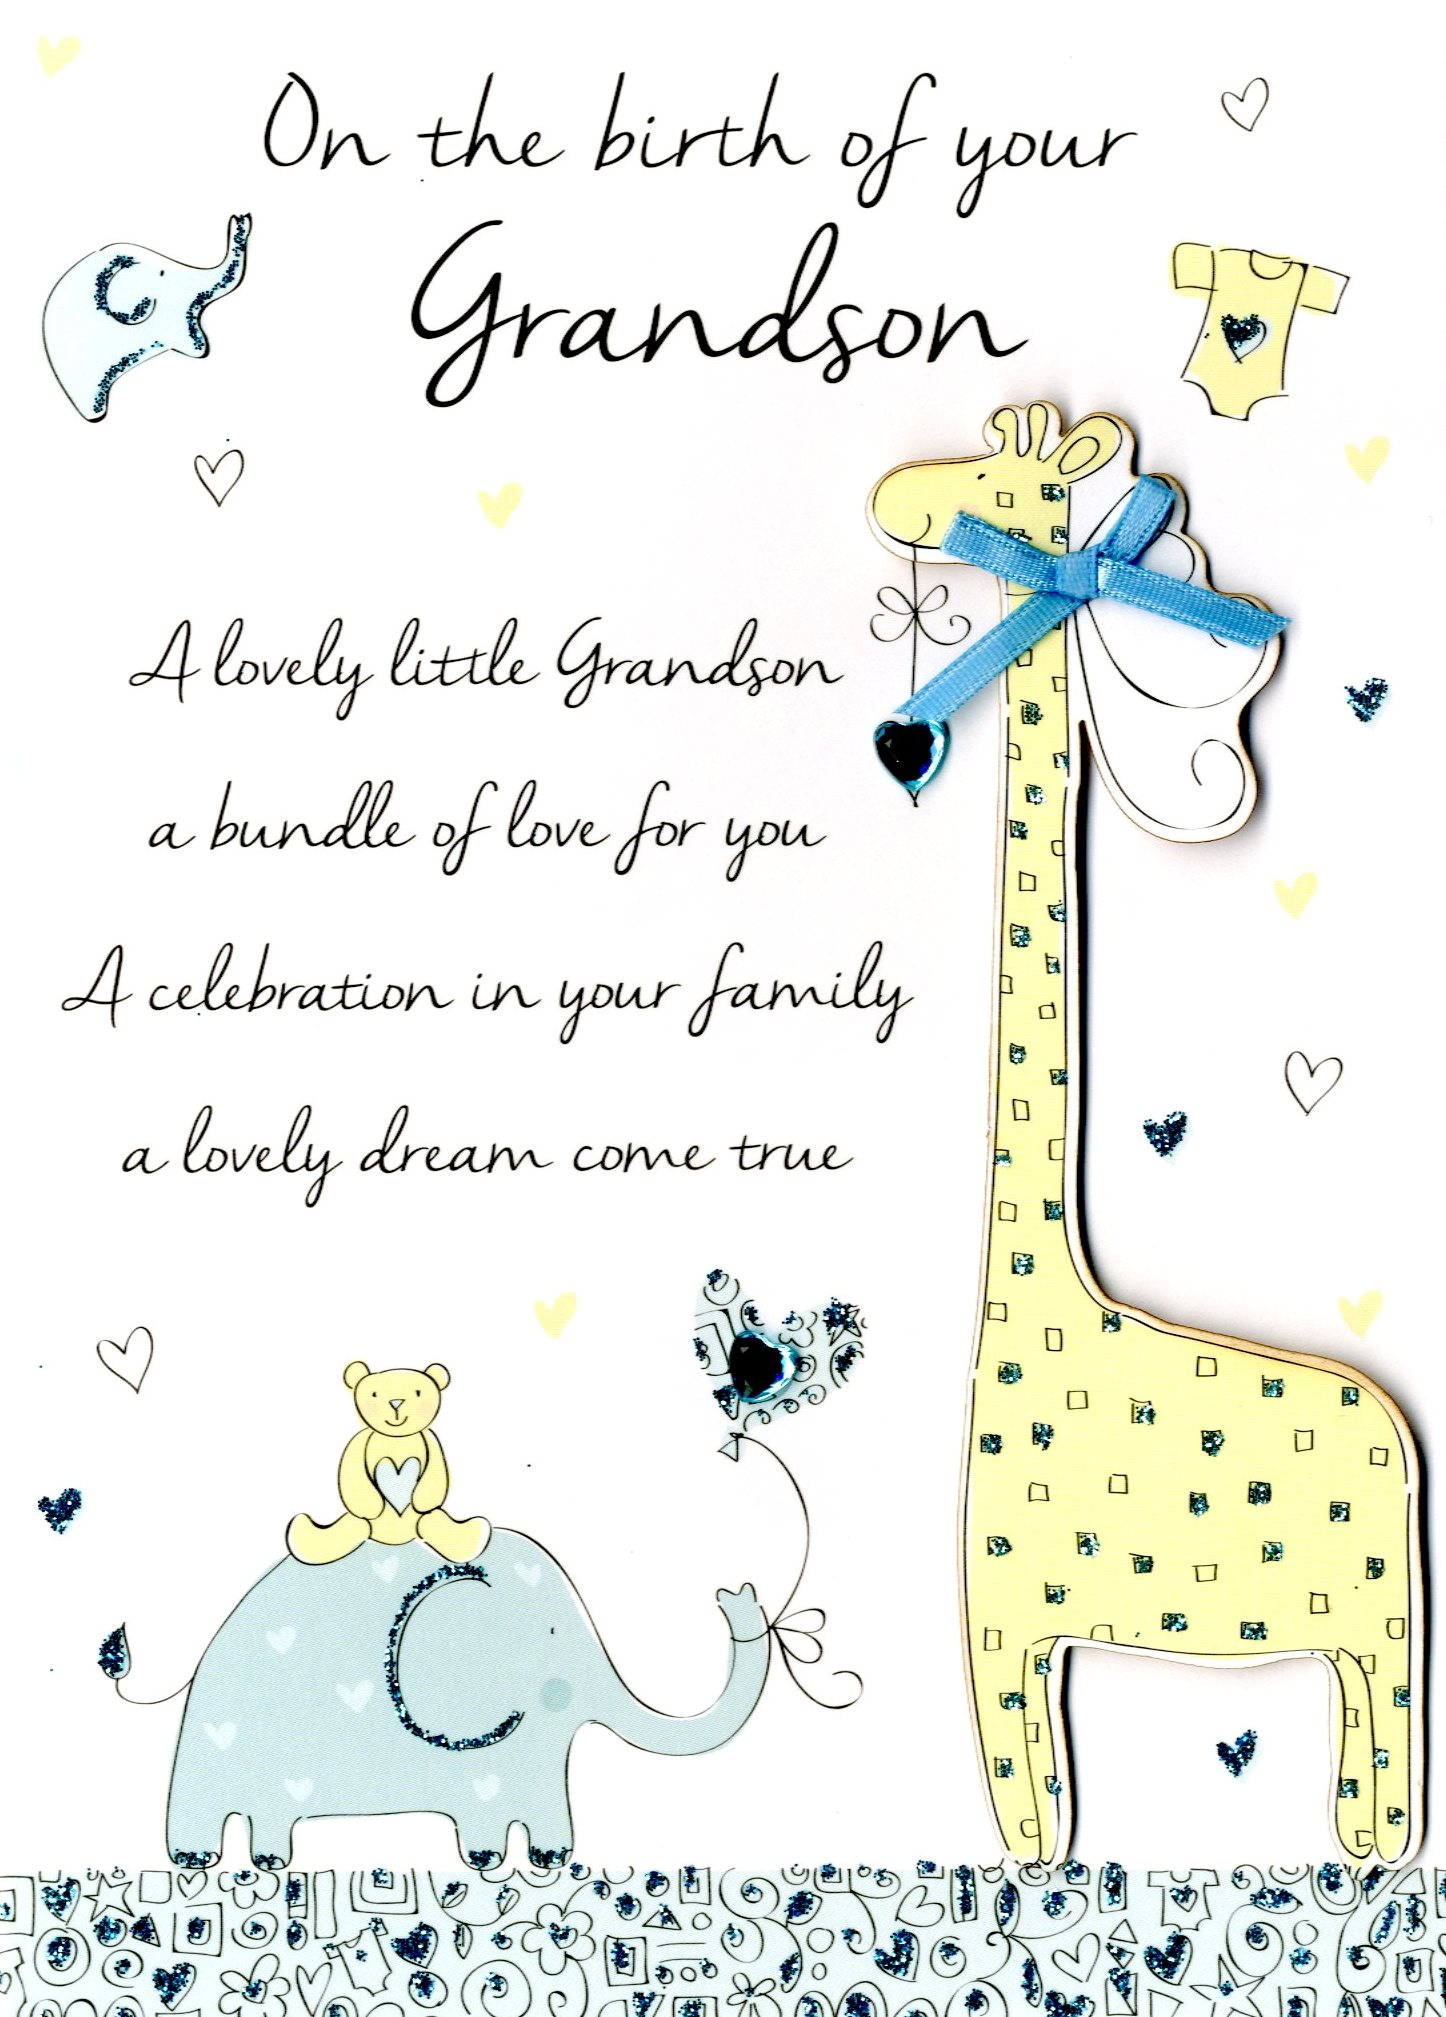 New baby grandson congratulations greeting card cards love kates new baby grandson congratulations greeting card m4hsunfo